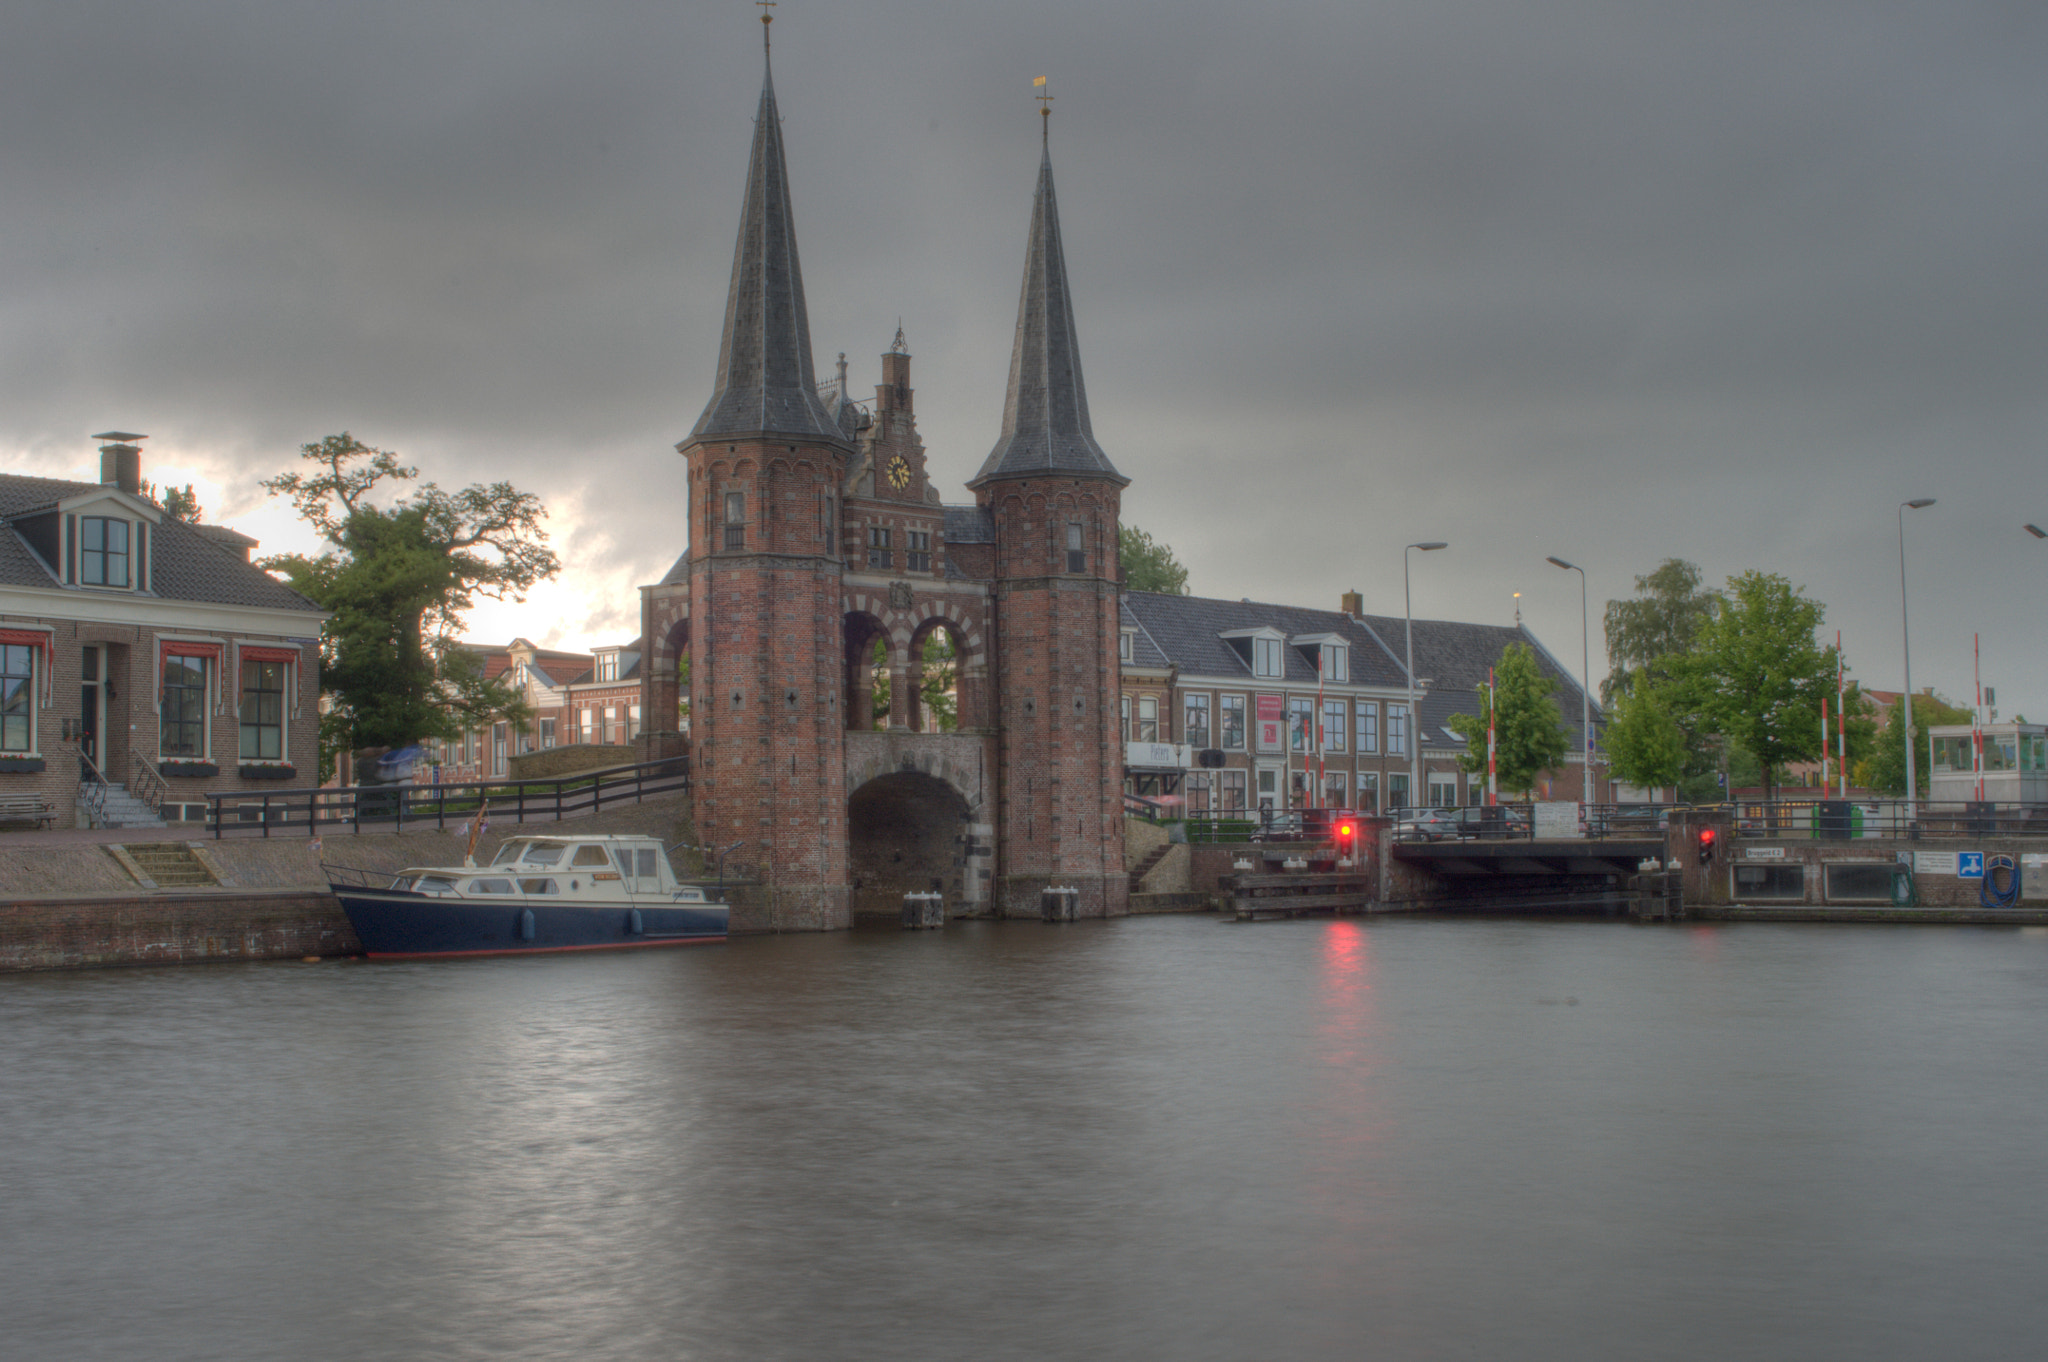 Photograph Watergate of Sneek (HDR) by Alexander van der Sar on 500px